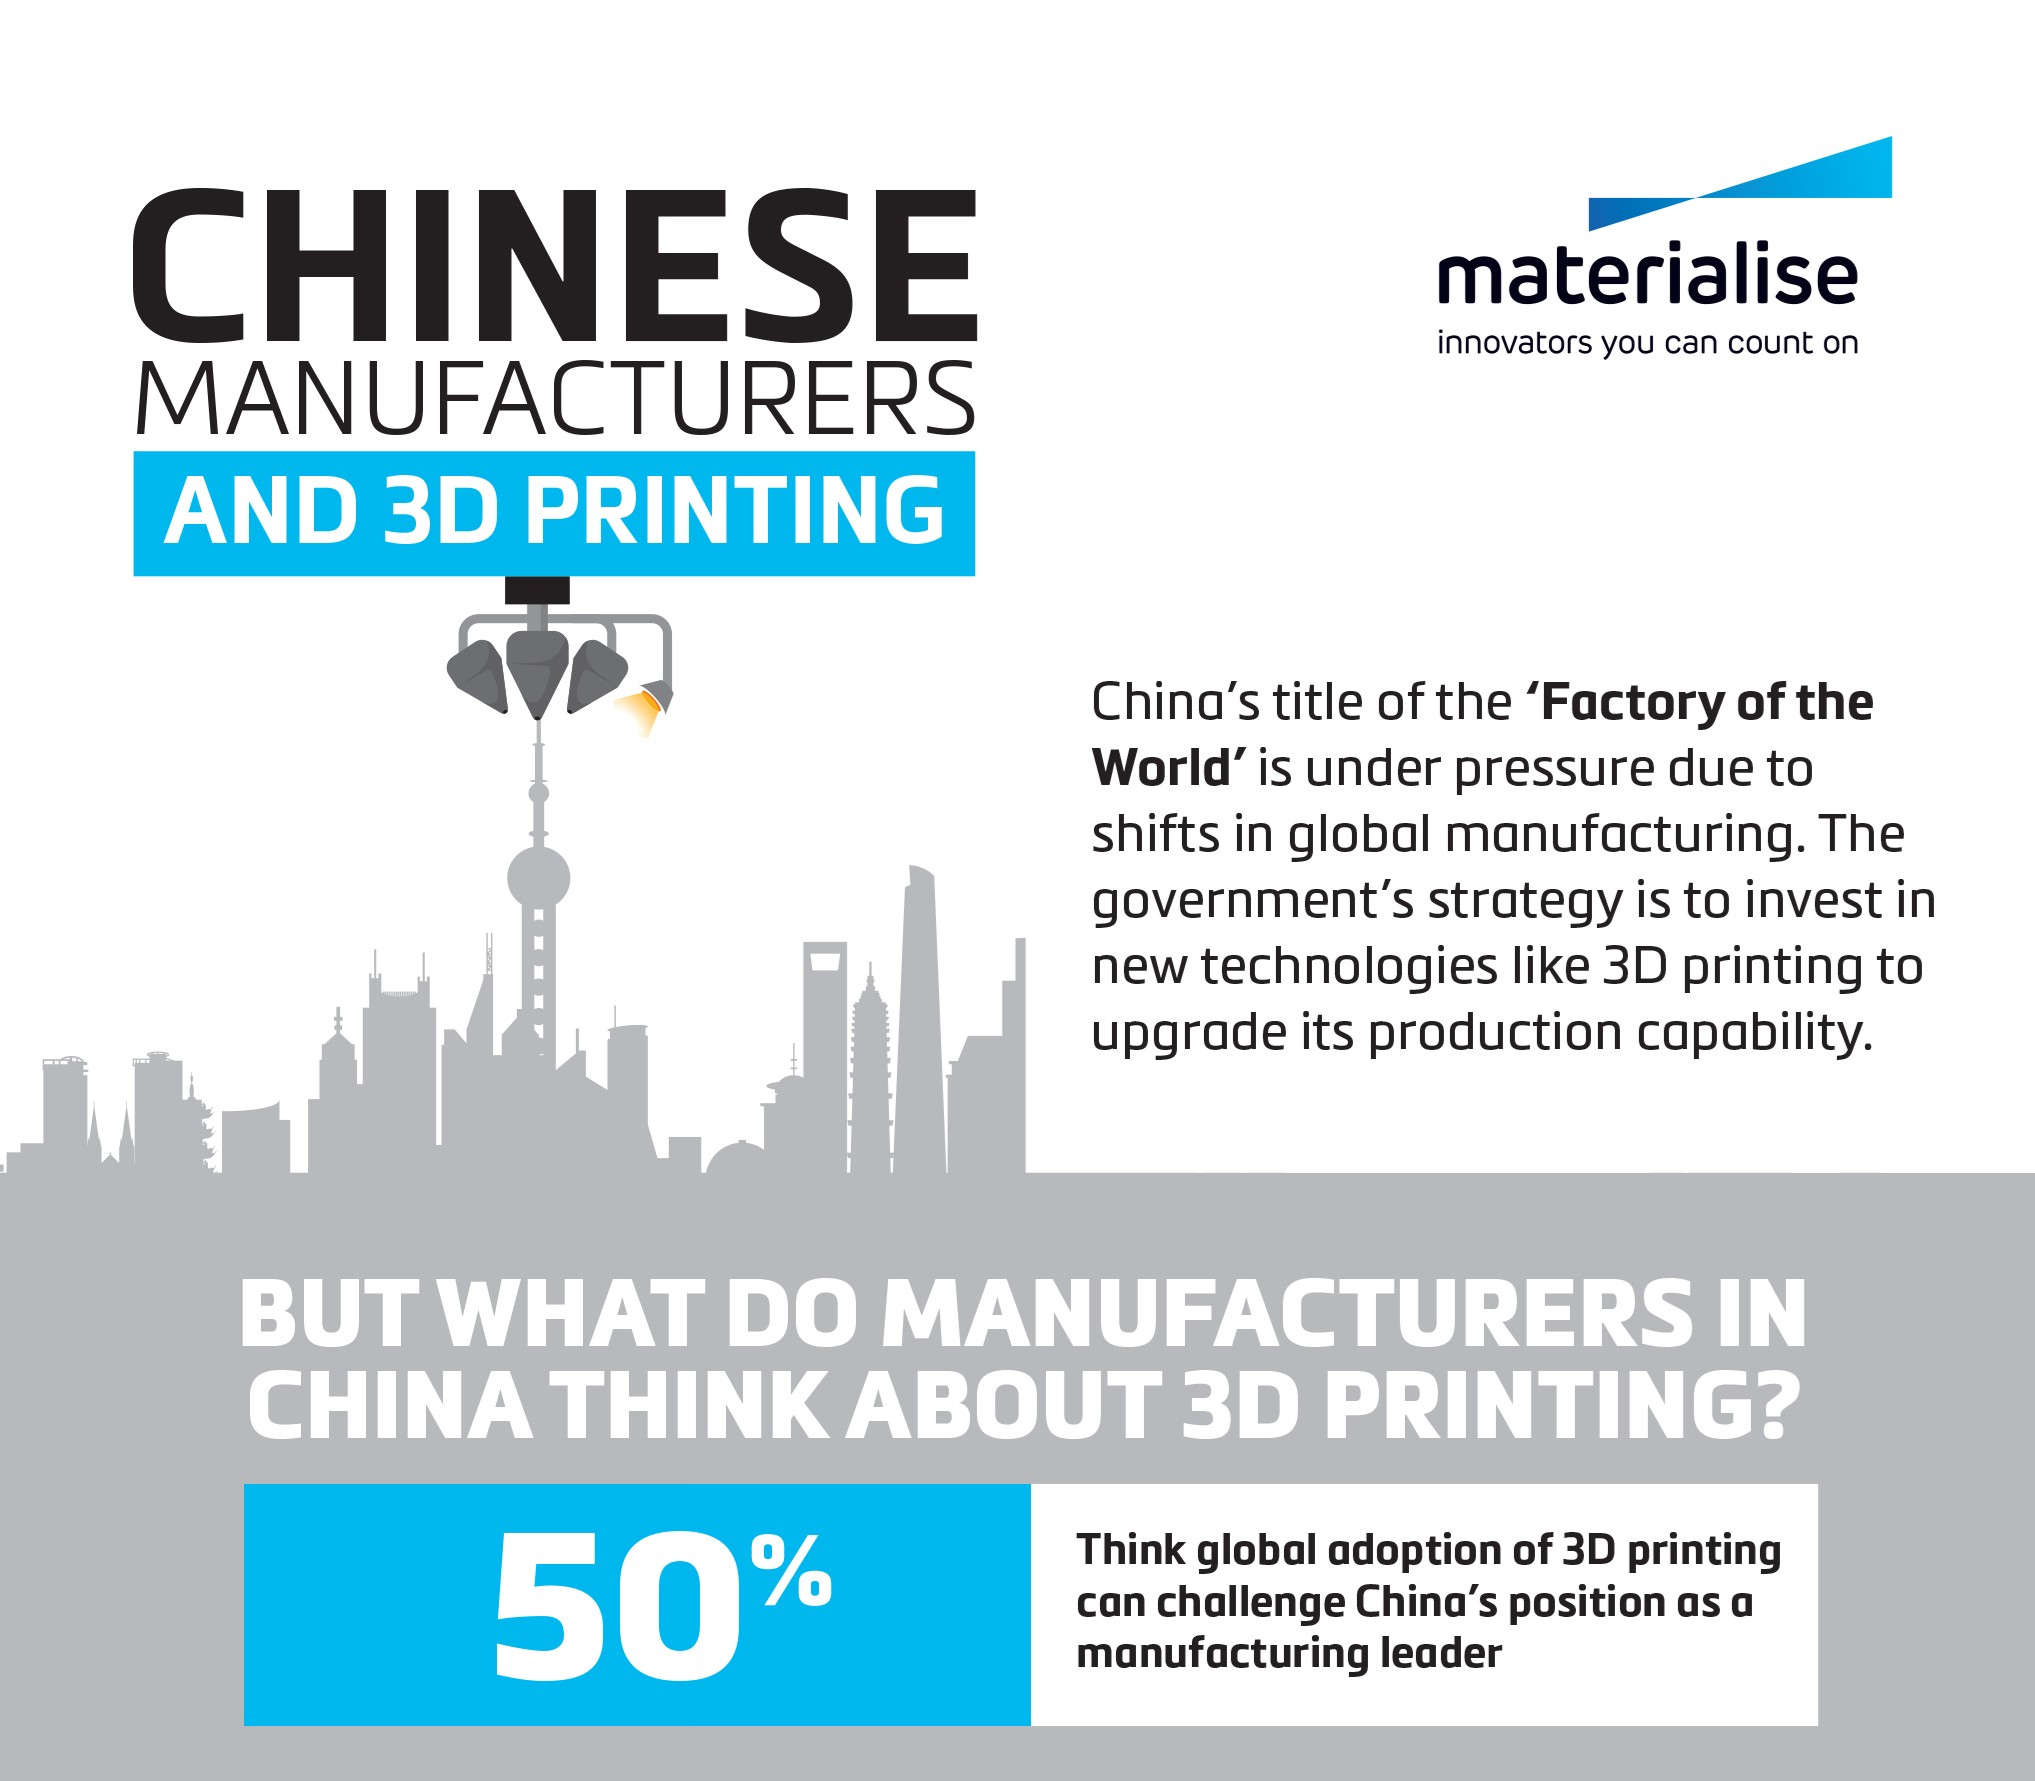 Materialise China Survey infographic detailing the opinion of Chinese manufacturers on 3D printing. Image via Materialise.